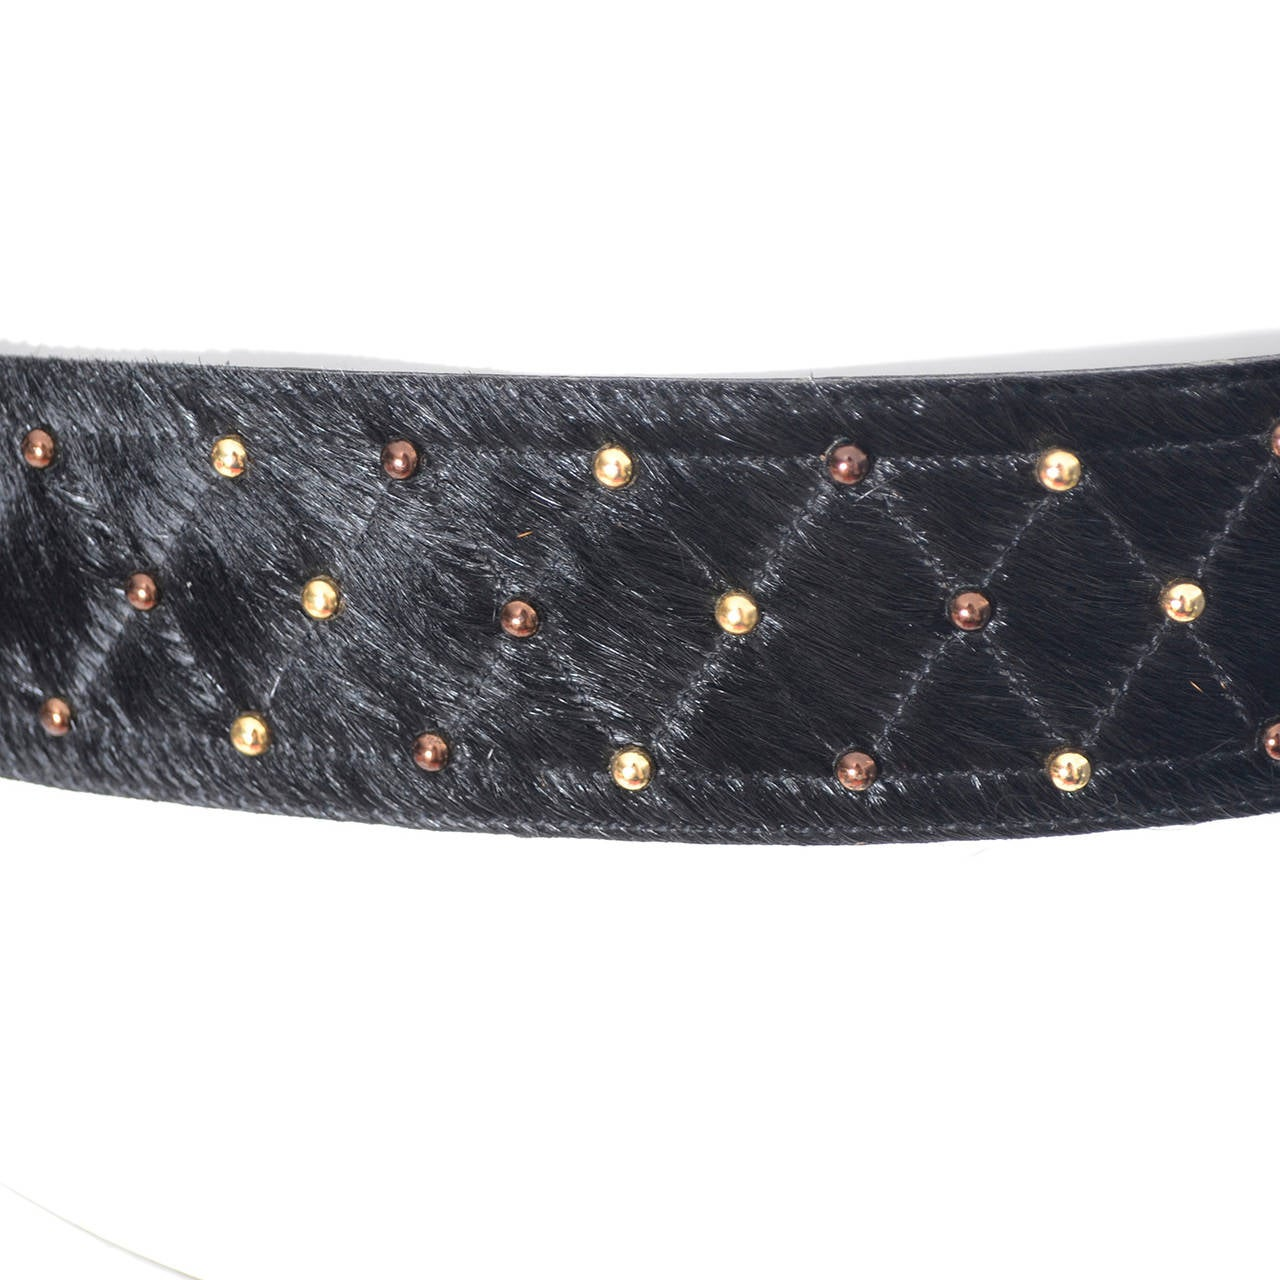 YSL Vintage Belt Yves Saint Laurent Studded Fur Ladies Belt Medium 5